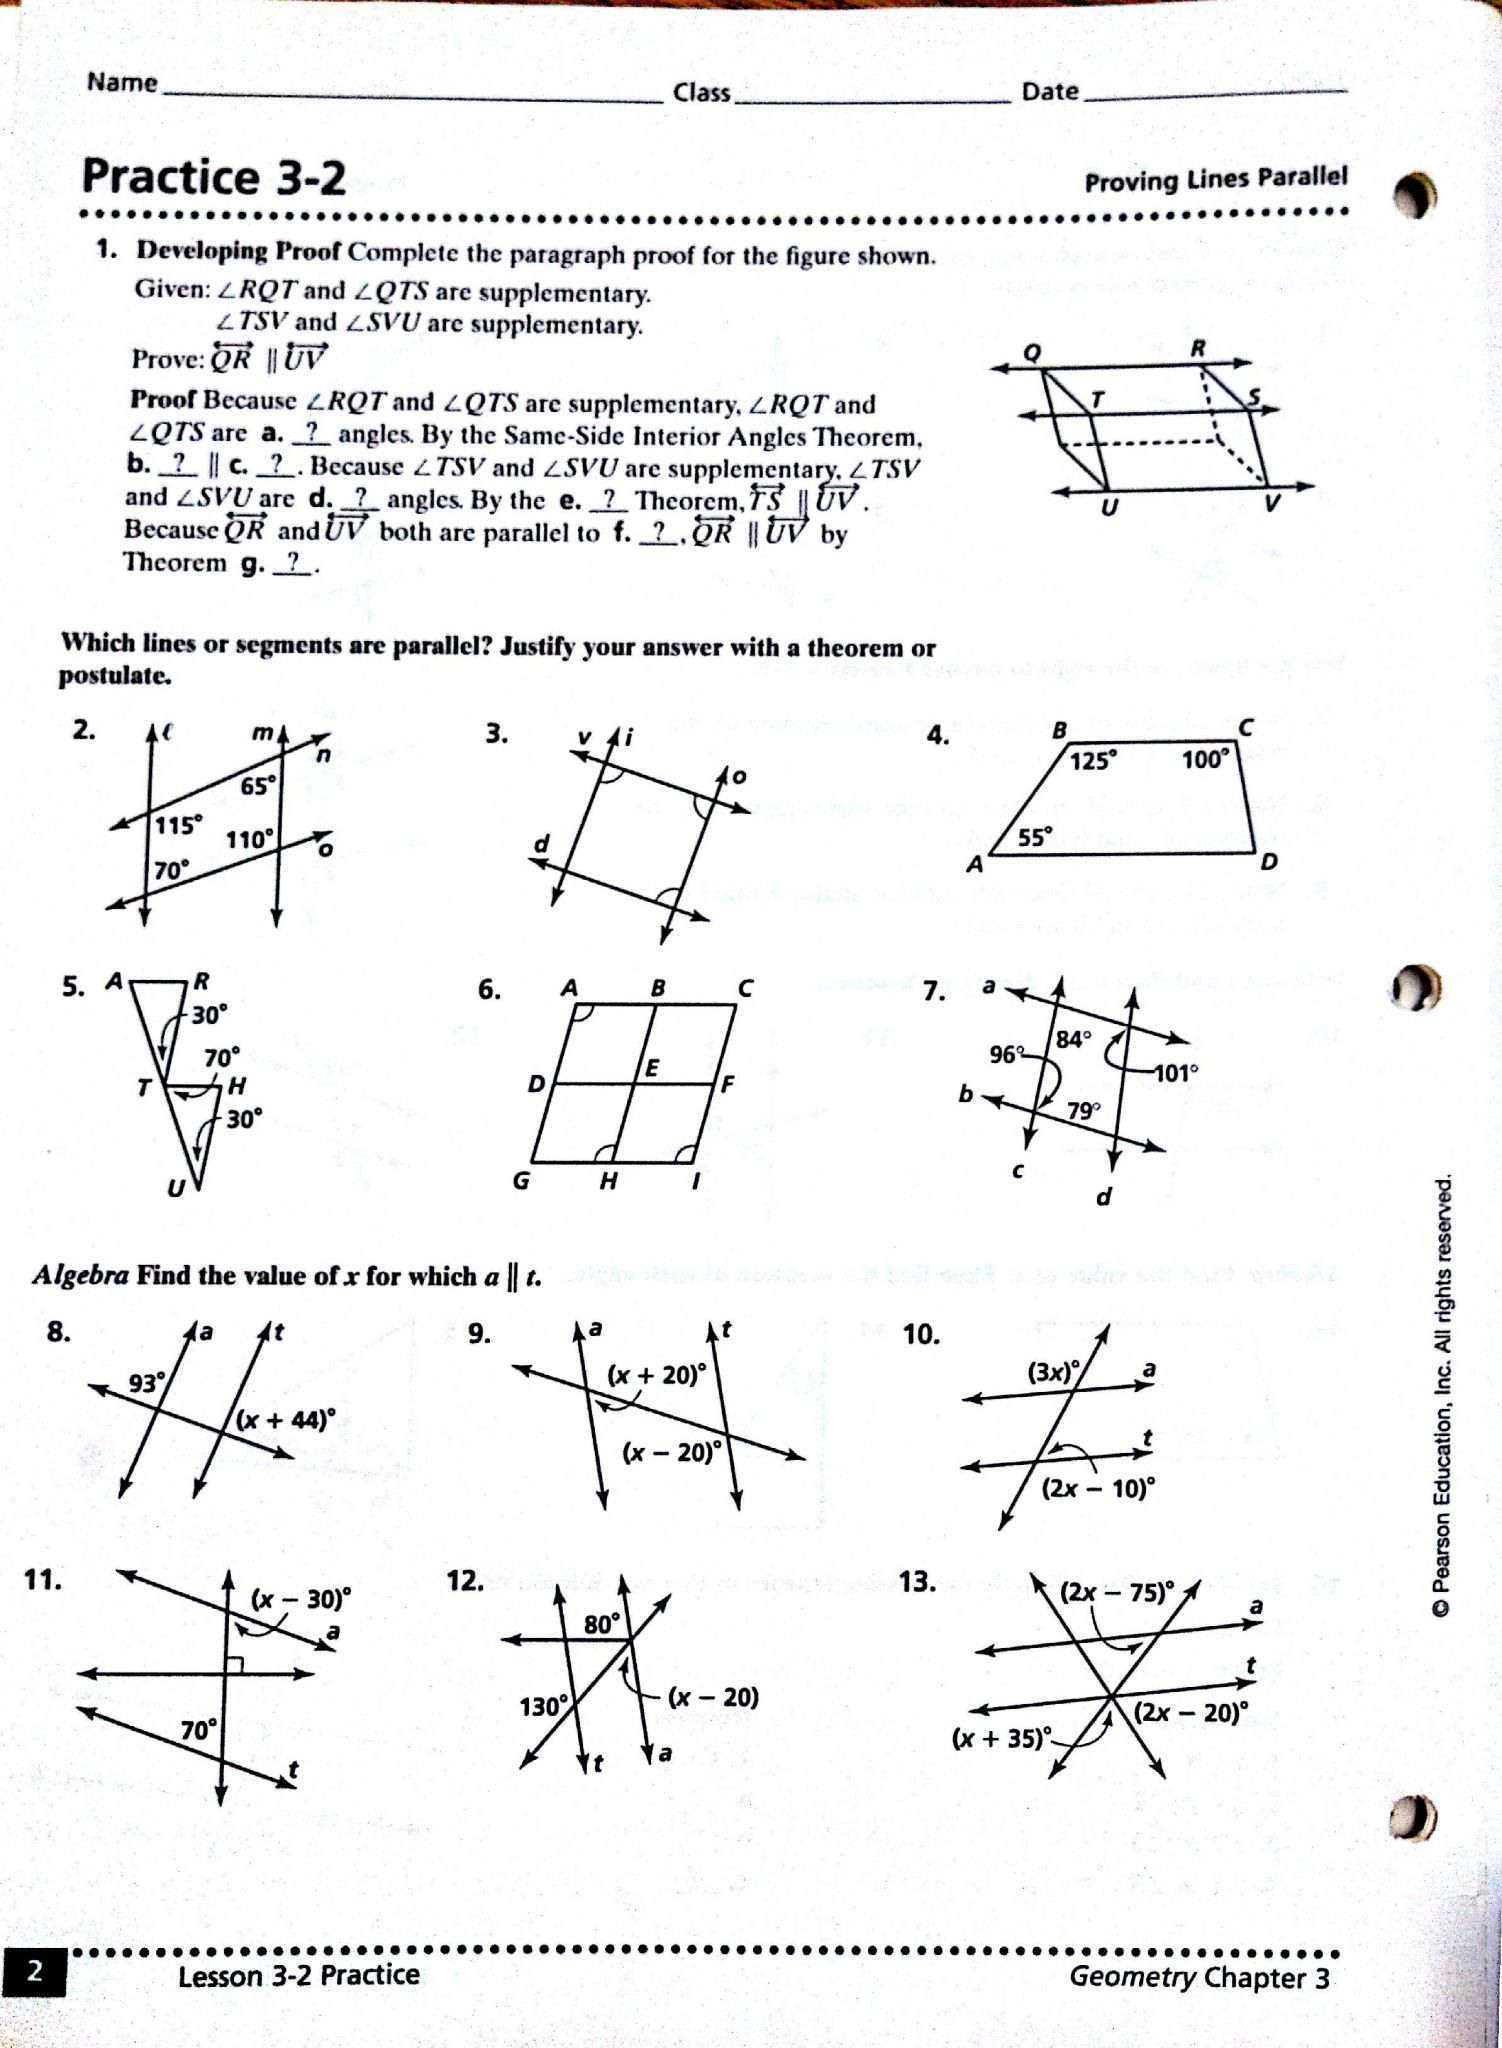 Proving Parallel Lines Worksheet With Answers